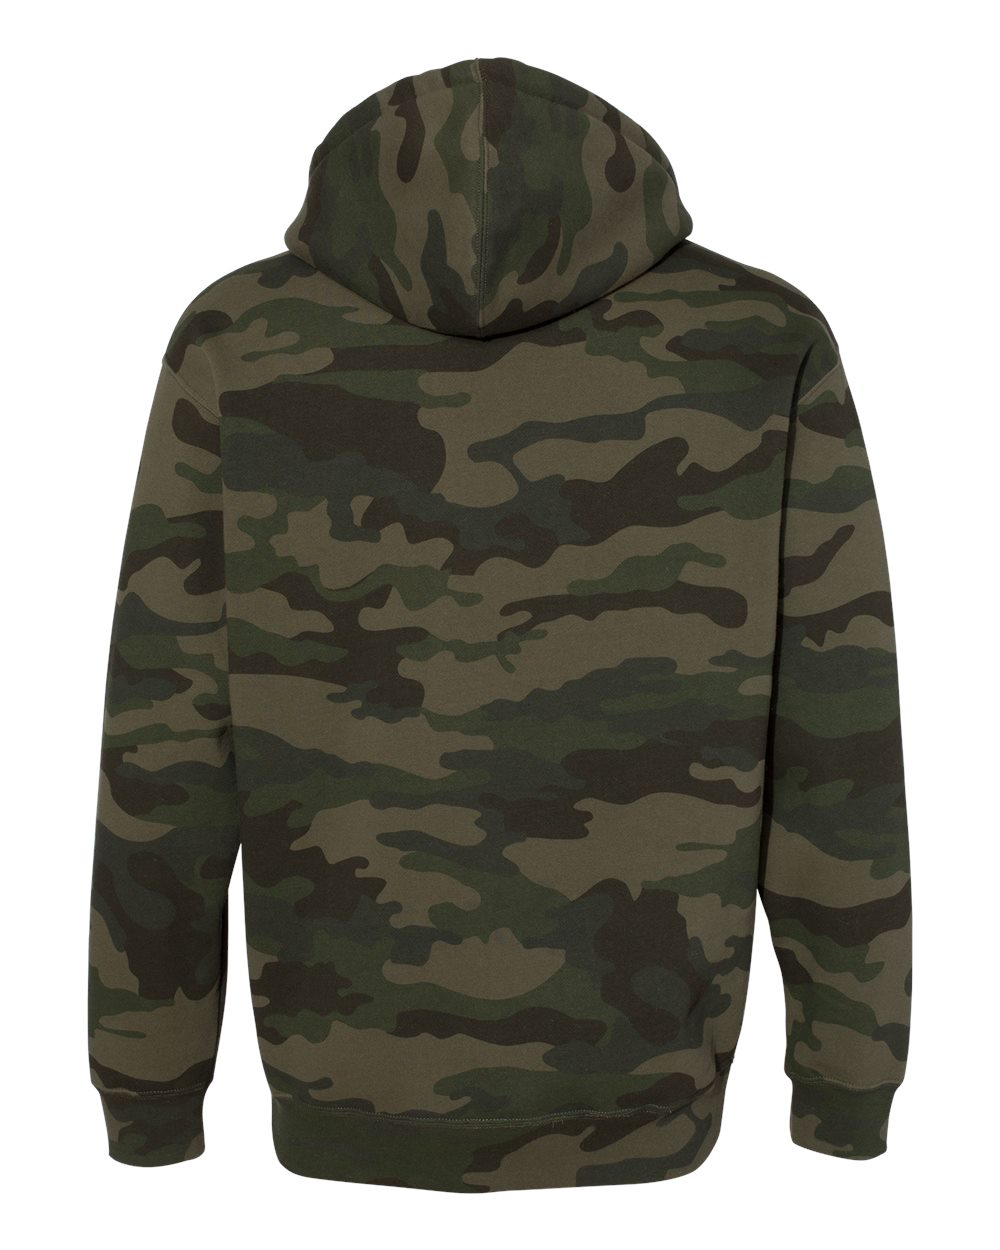 Independent-Trading-Co-Mens-Hooded-Pullover-Sweatshirt-IND4000-up-to-3XL miniature 37